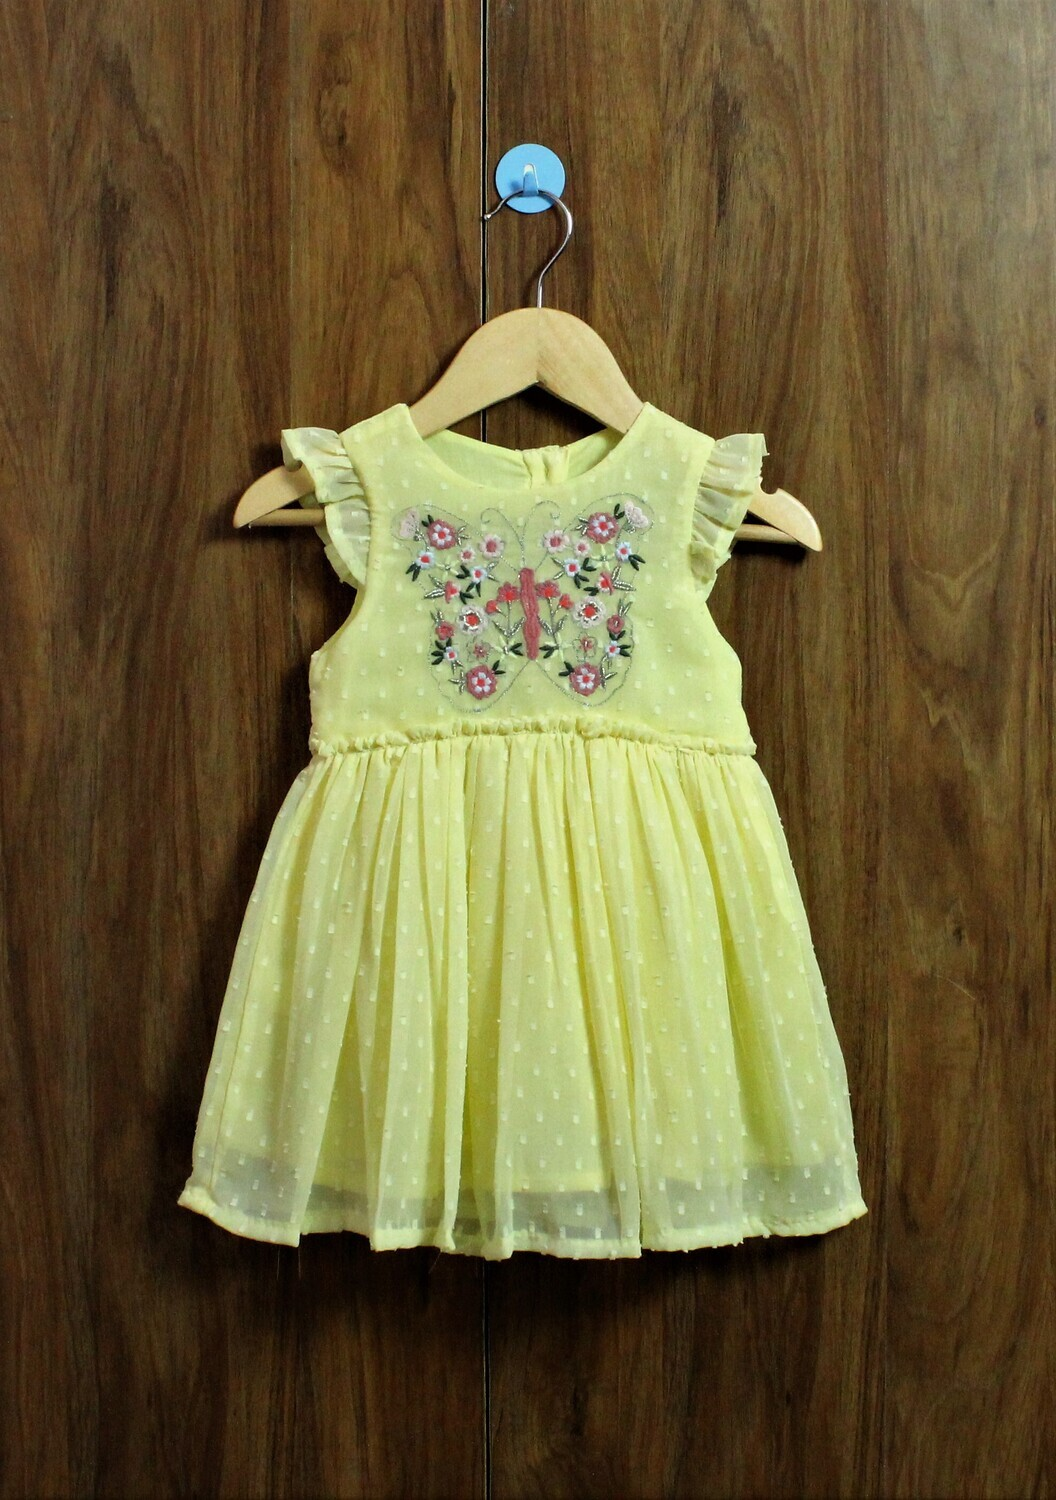 Butterfly Emb dress(1 to 7-8 Yrs.)